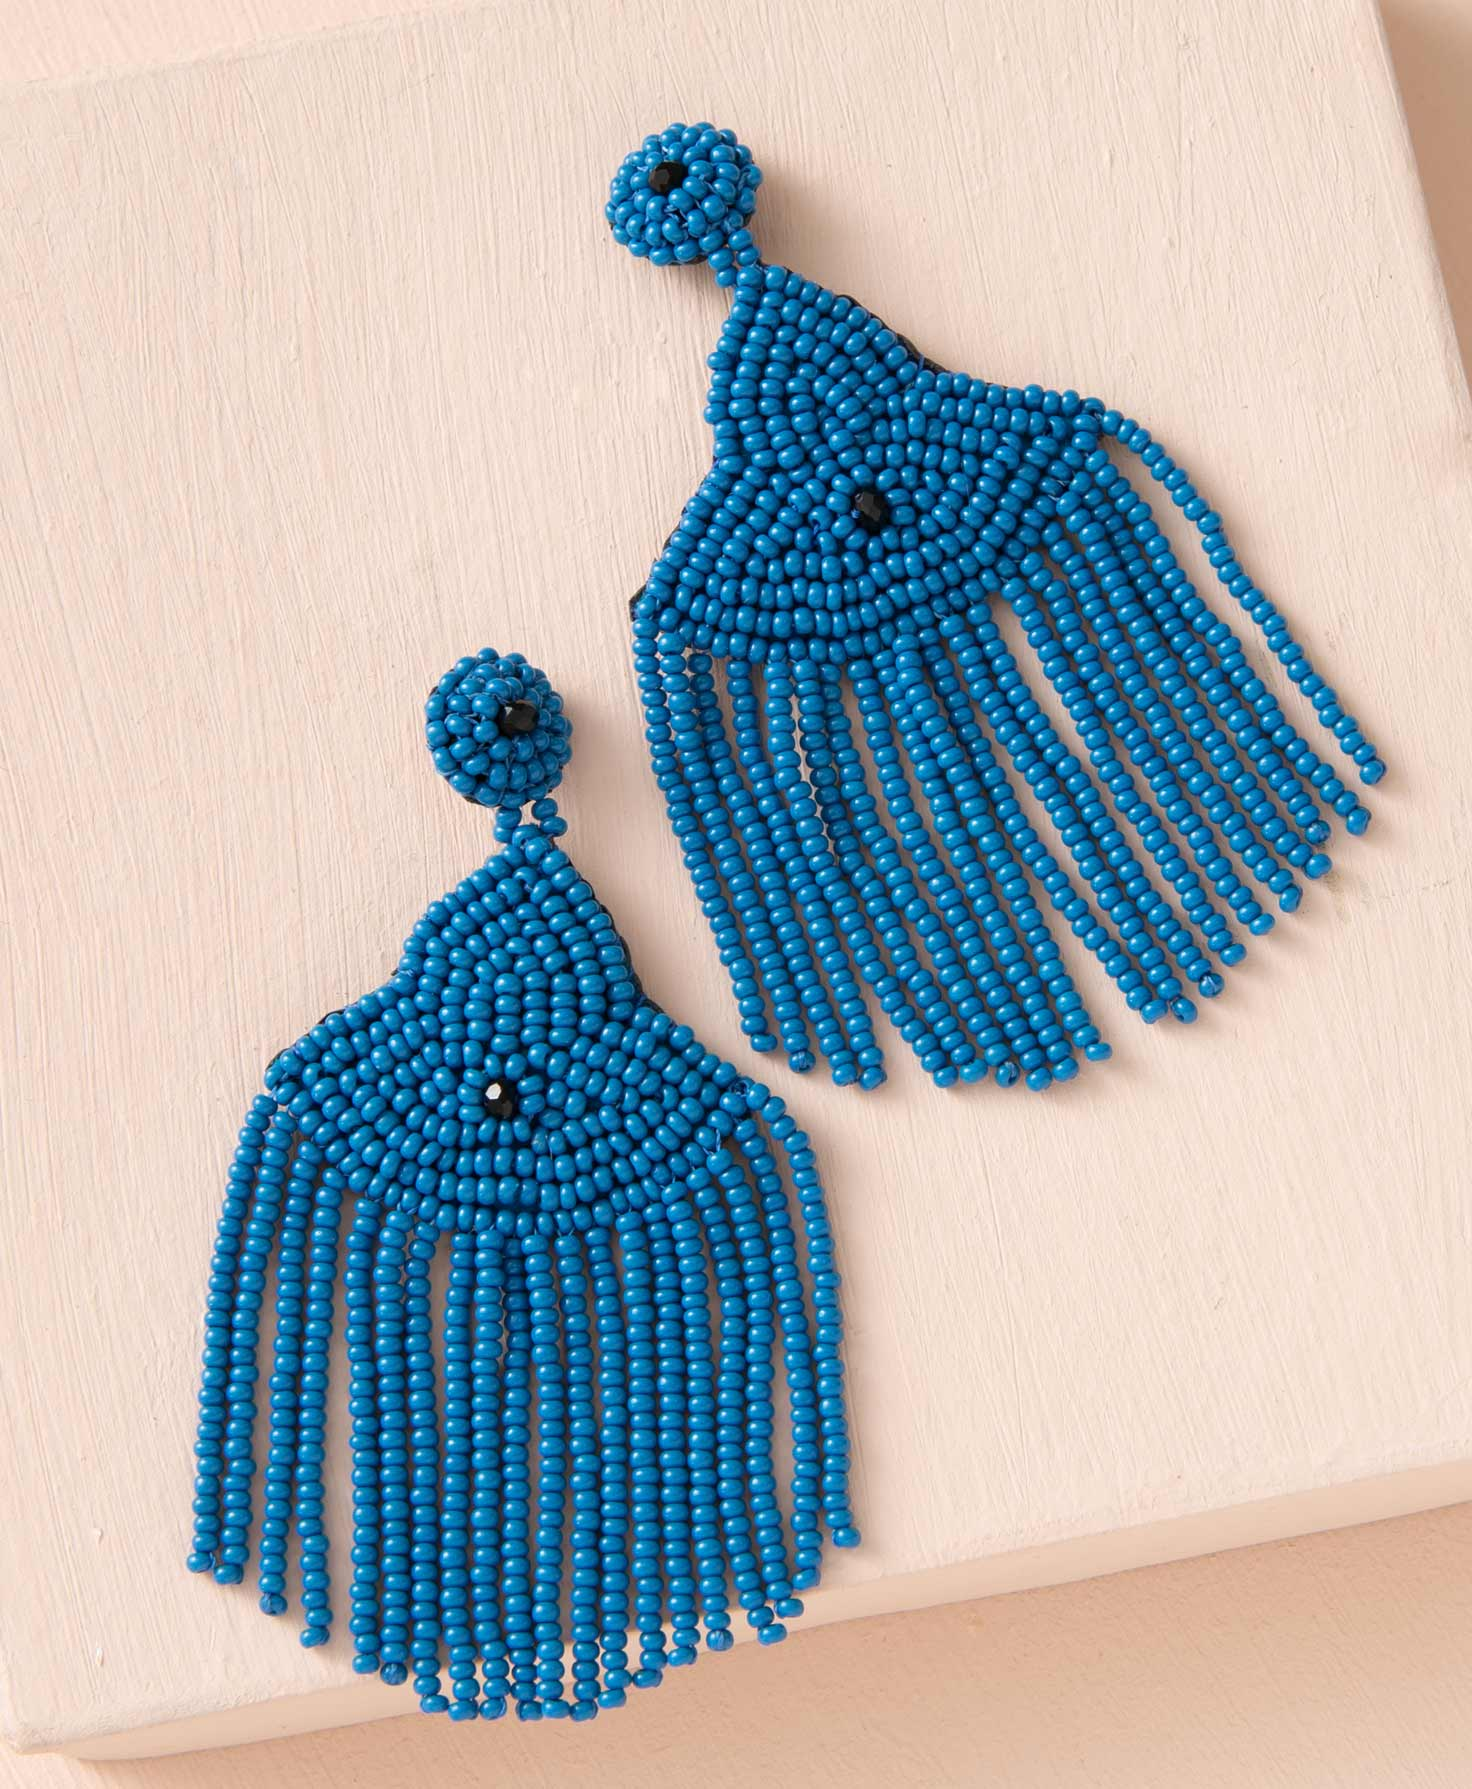 The Enthusiast Earrings lay on a peach background. They are post-style earrings with a chandelier of blue glass beads hanging down. The post itself is covered in these blue beads, with a single black, faceted glass bead in the center that adds a hint of glimmer. Connected to the post, a structured pattern of blue beads tapers down, widening as it goes to form a shape that roughly resembles an eye. In the center is another faceted black bead. Below this shape, many strands of blue beads hang down to form a fringe.